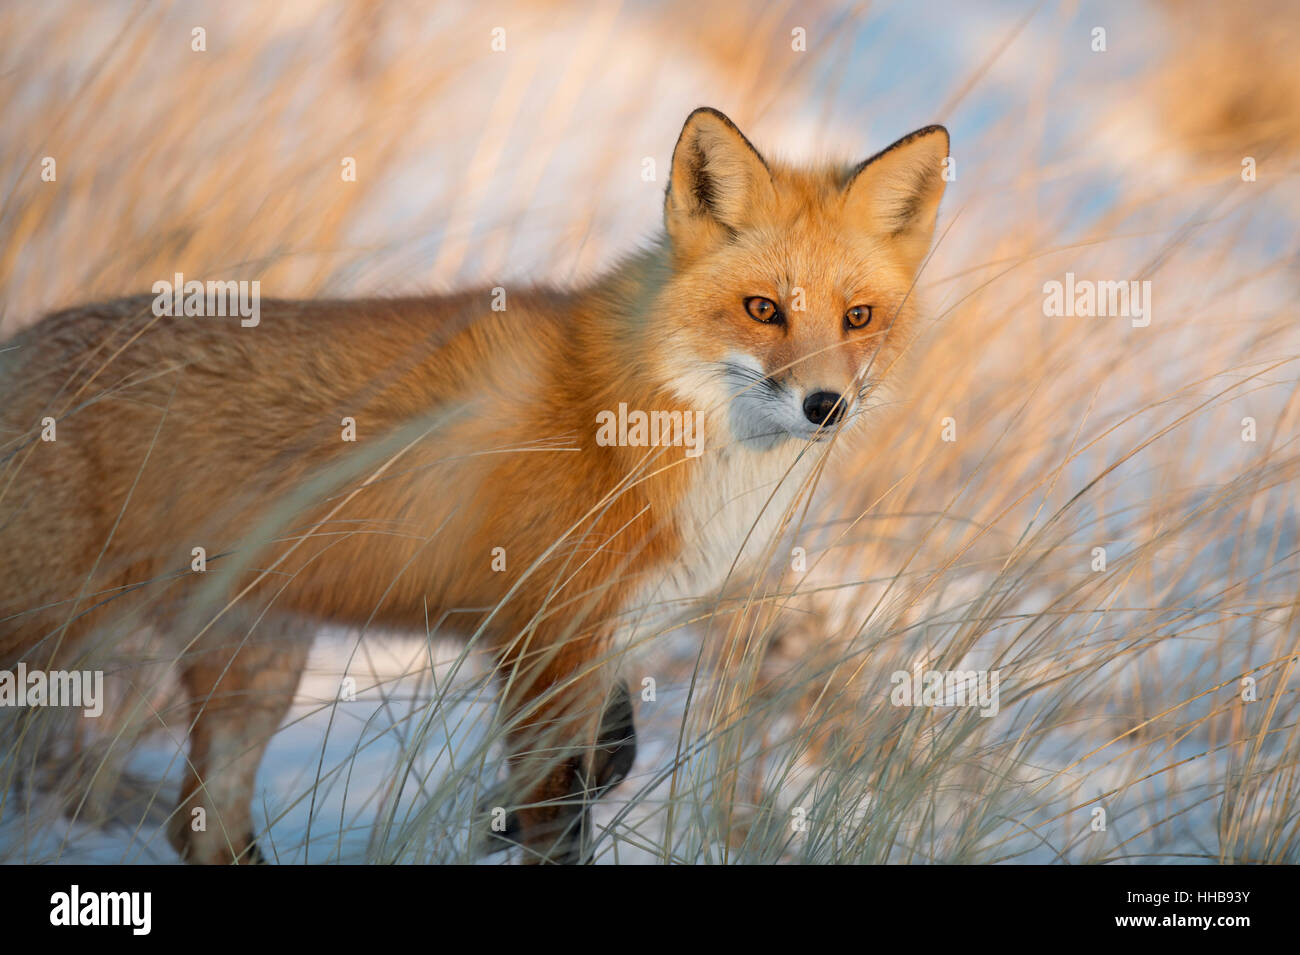 A Red Fox stands in a field of tall brown grass as the setting sun shines on its face. - Stock Image